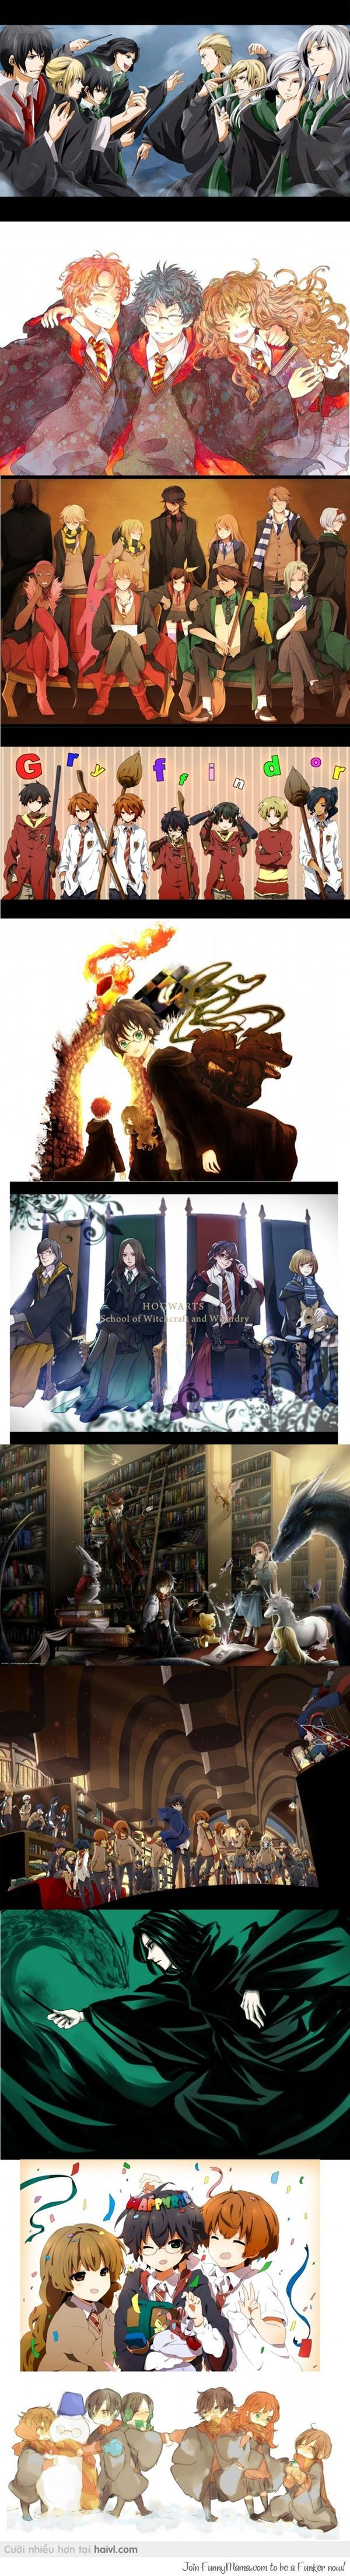 I just wish they made an anime based on harry potter....